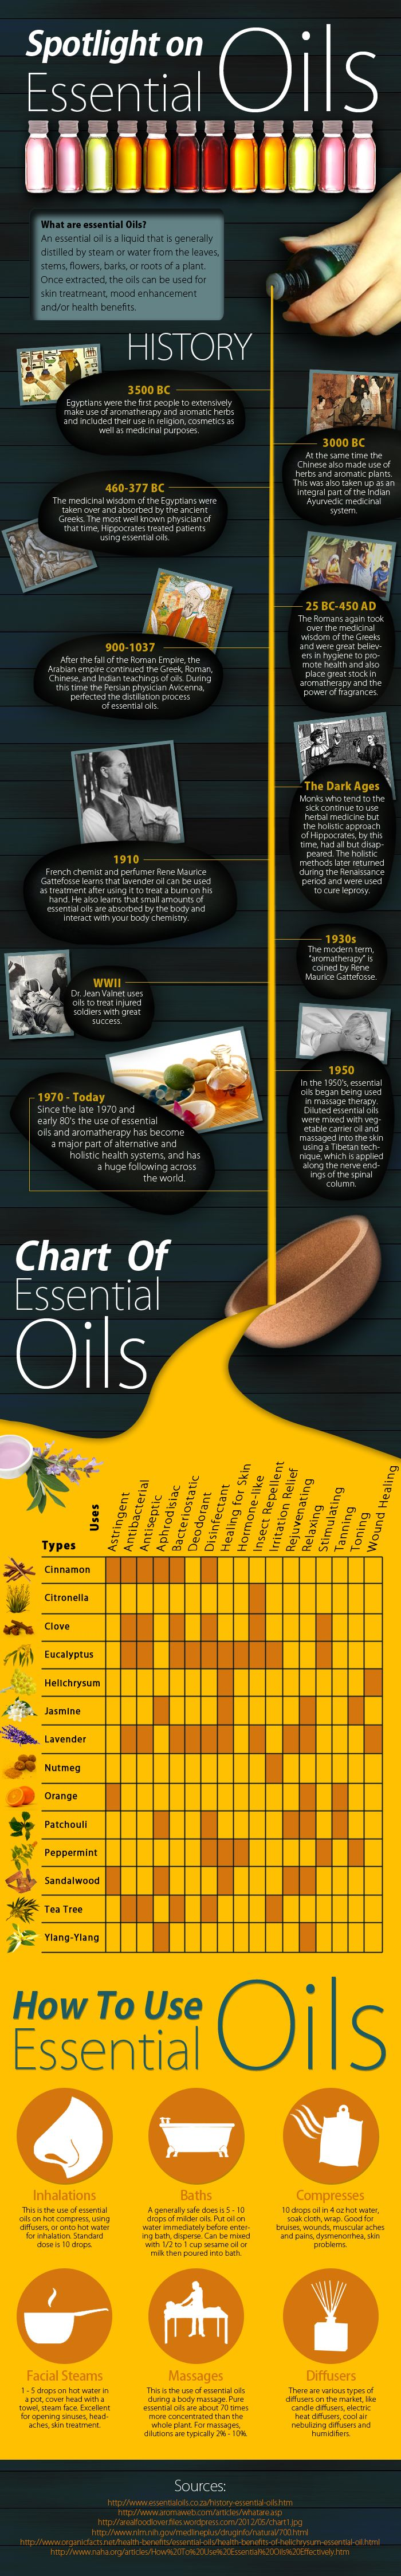 How to use all those essential oils